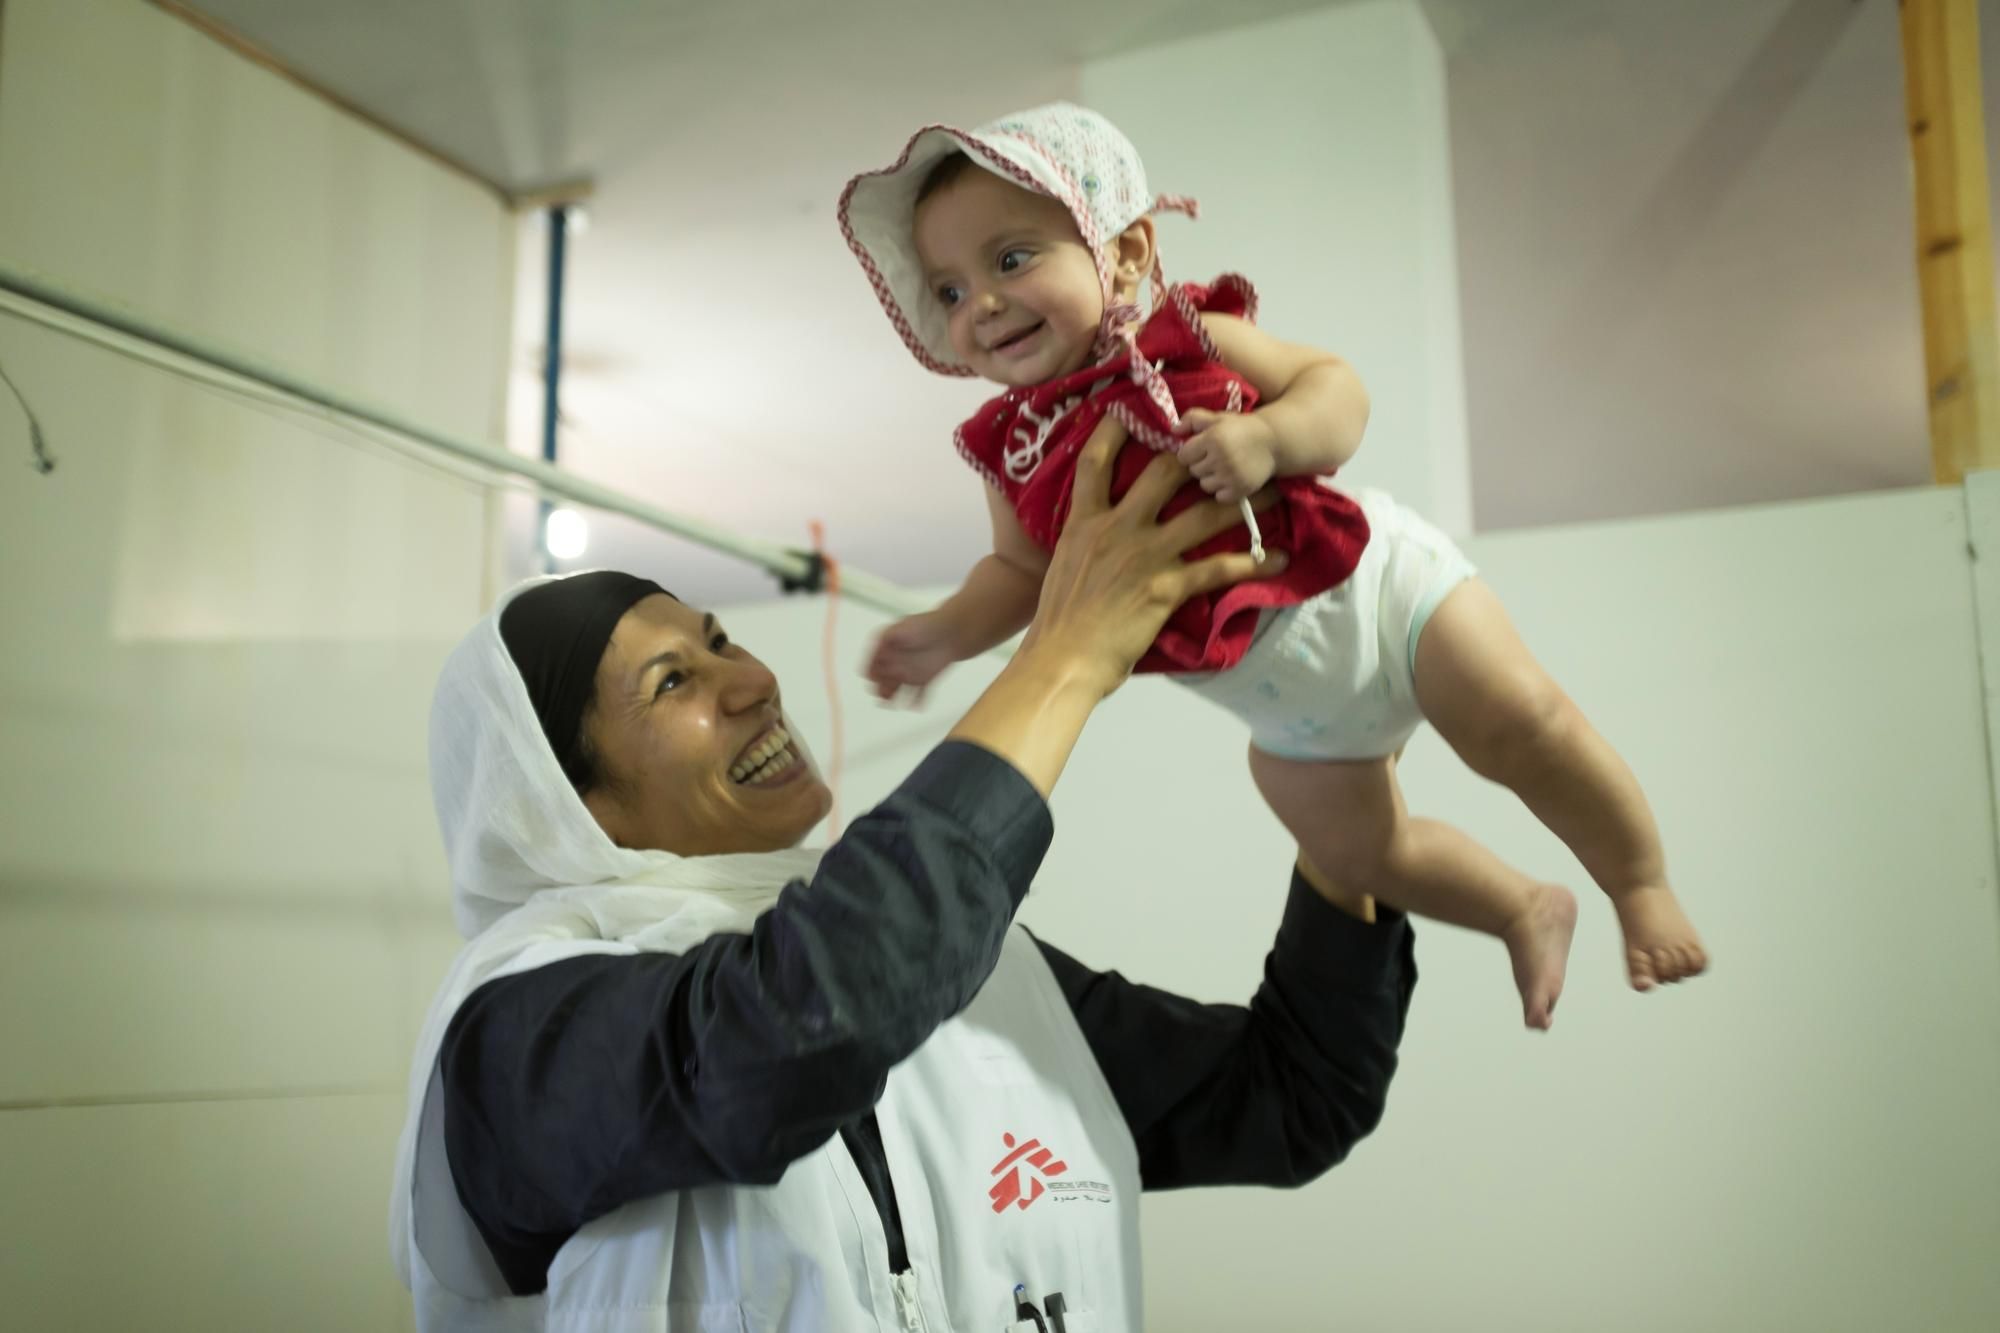 MSF midwife holds up child smiling gleefully